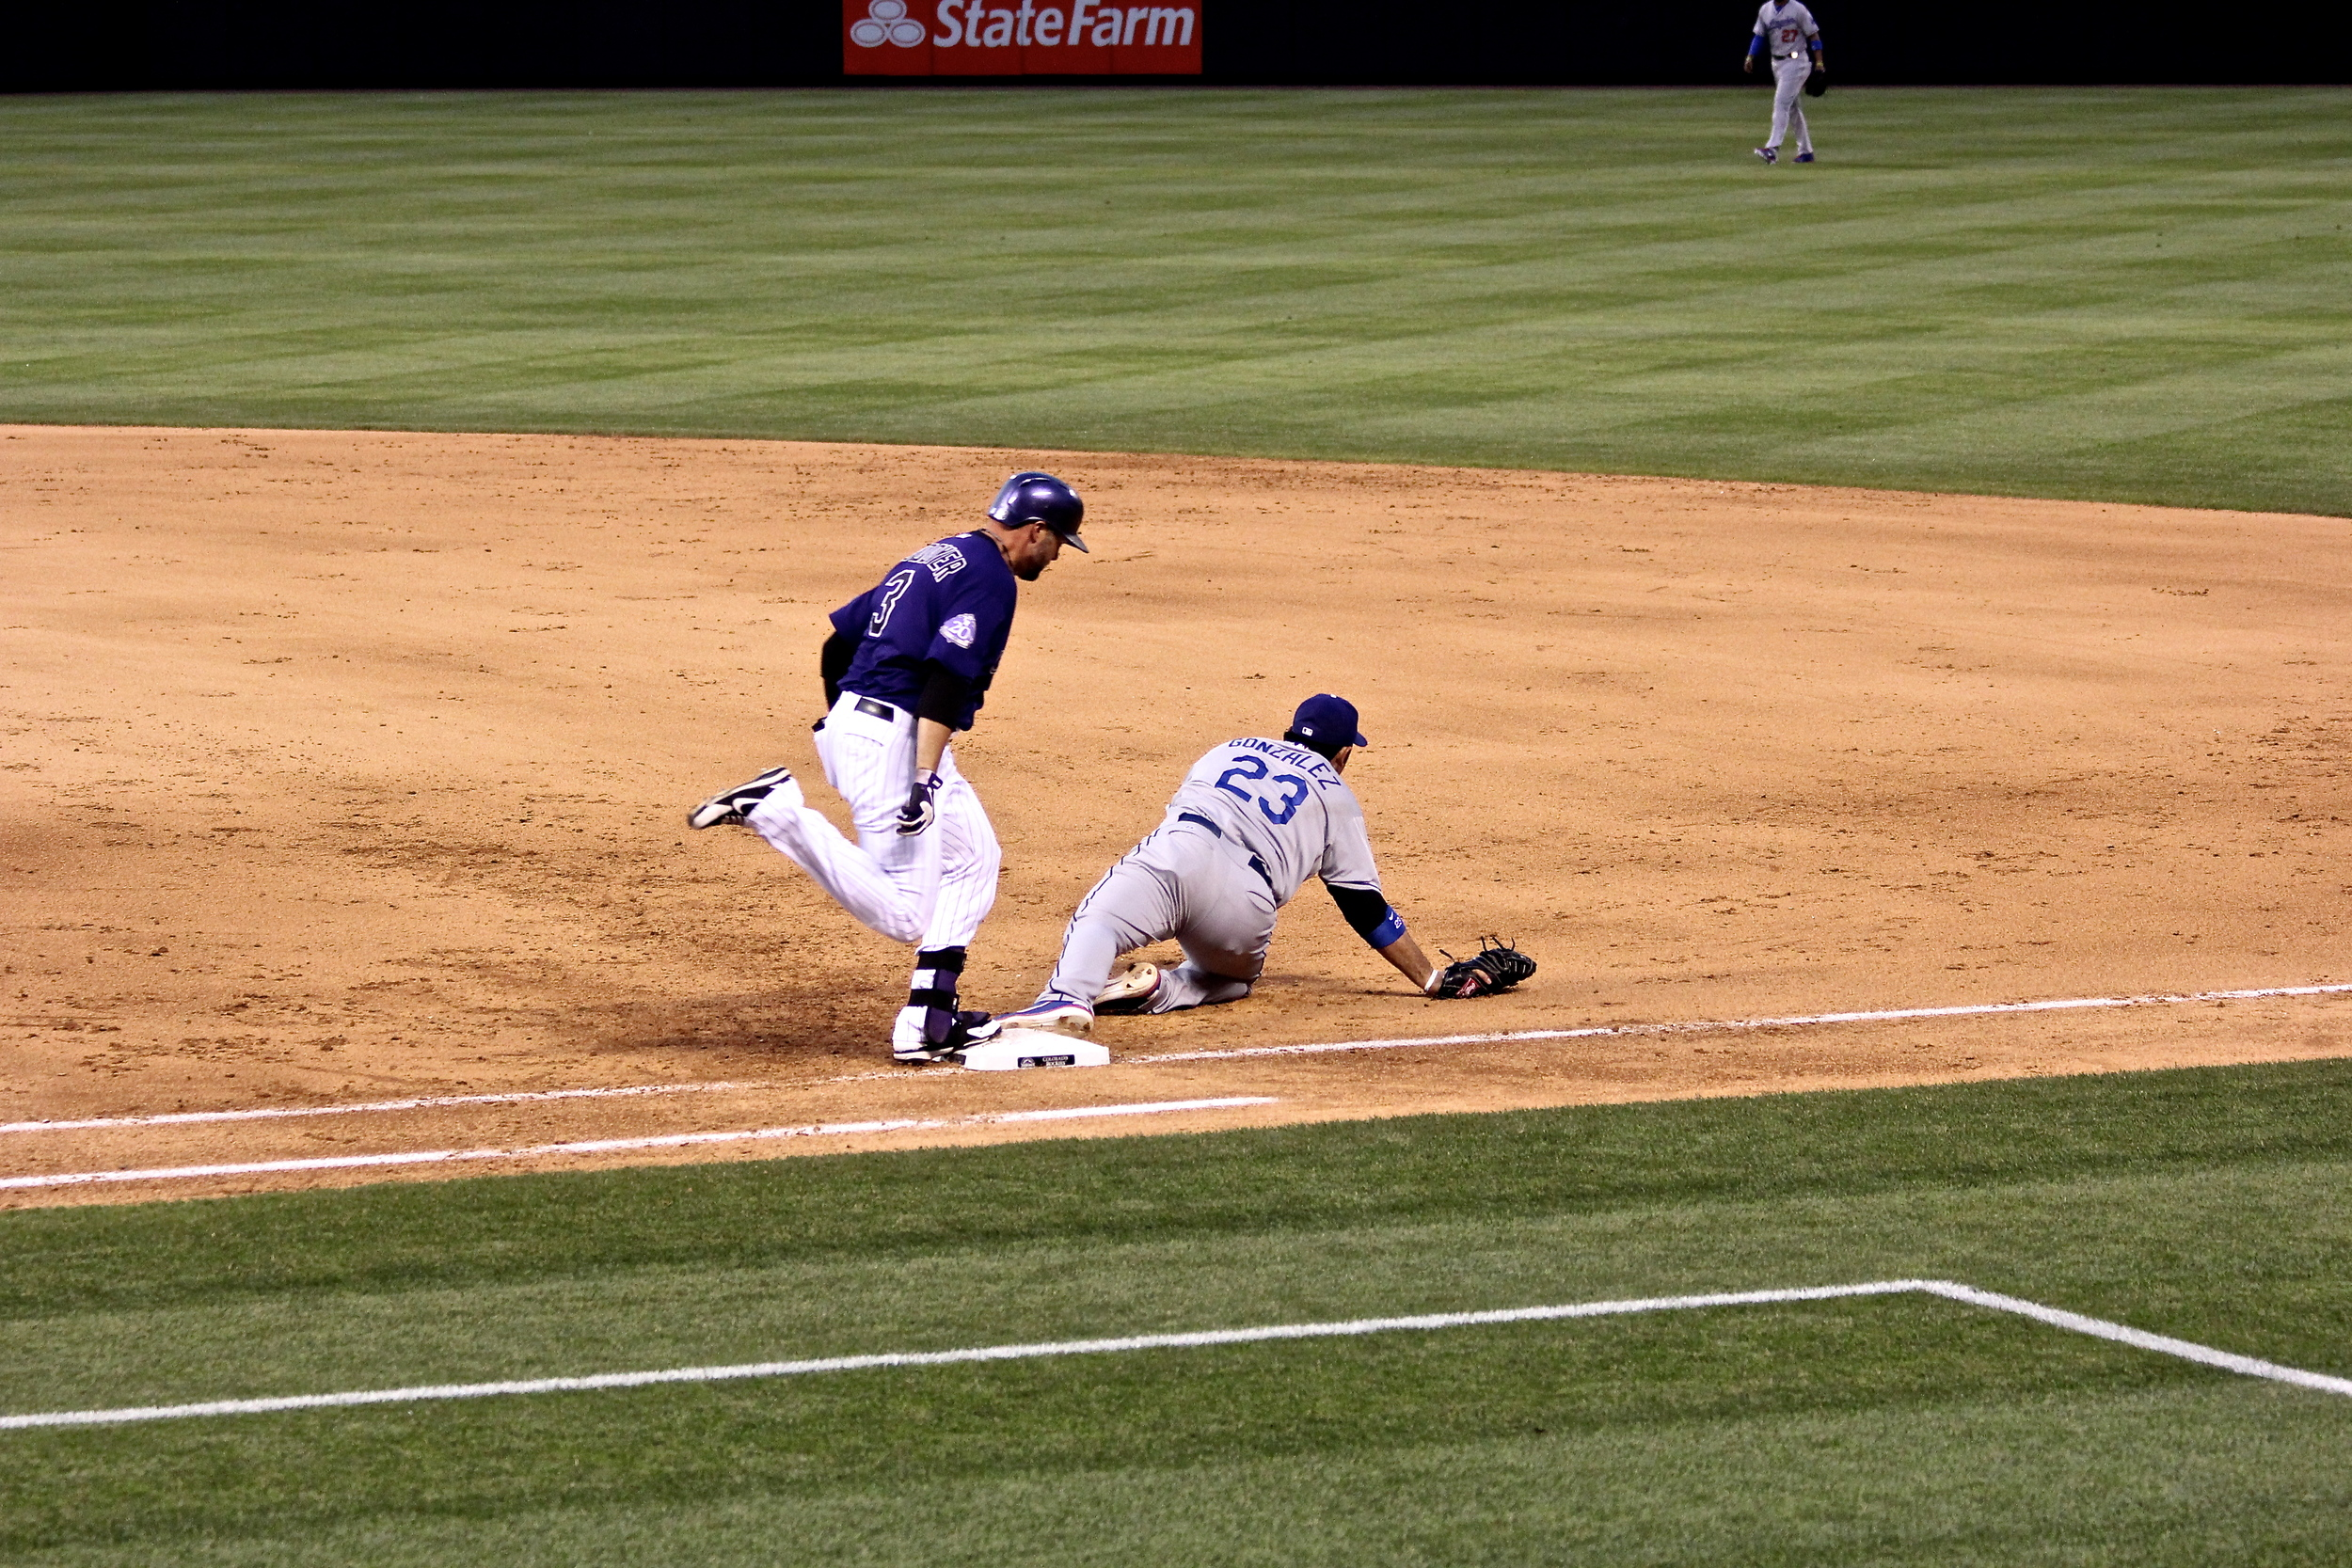 Michael Cuddyer's hitting stream comes to an end